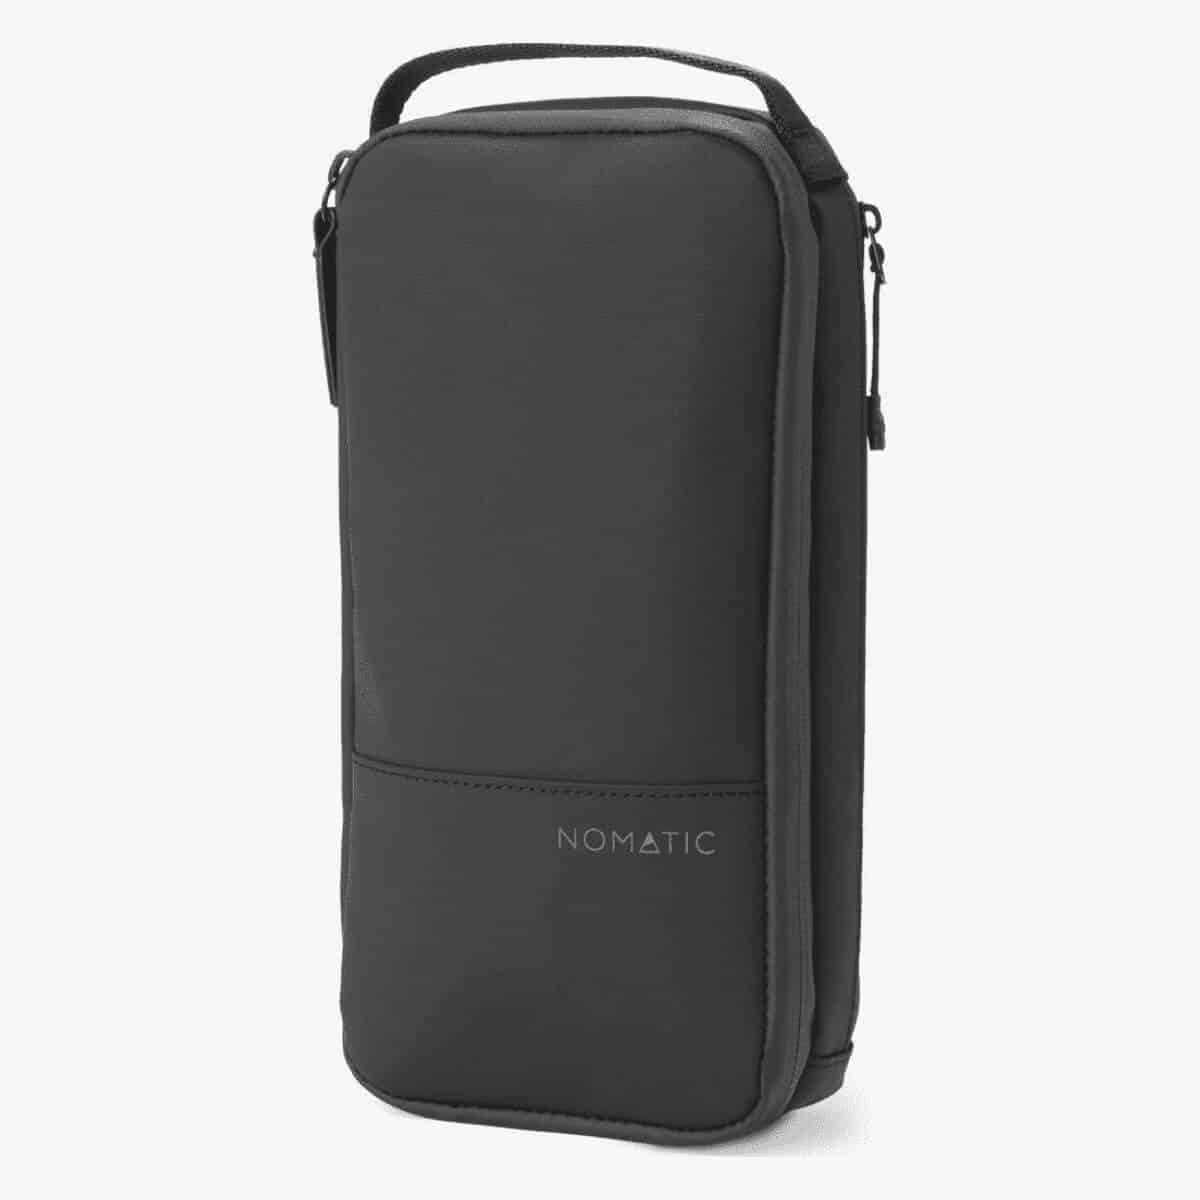 15 Best Toiletry Bags And Dopp Kits For Men Next Level Gents